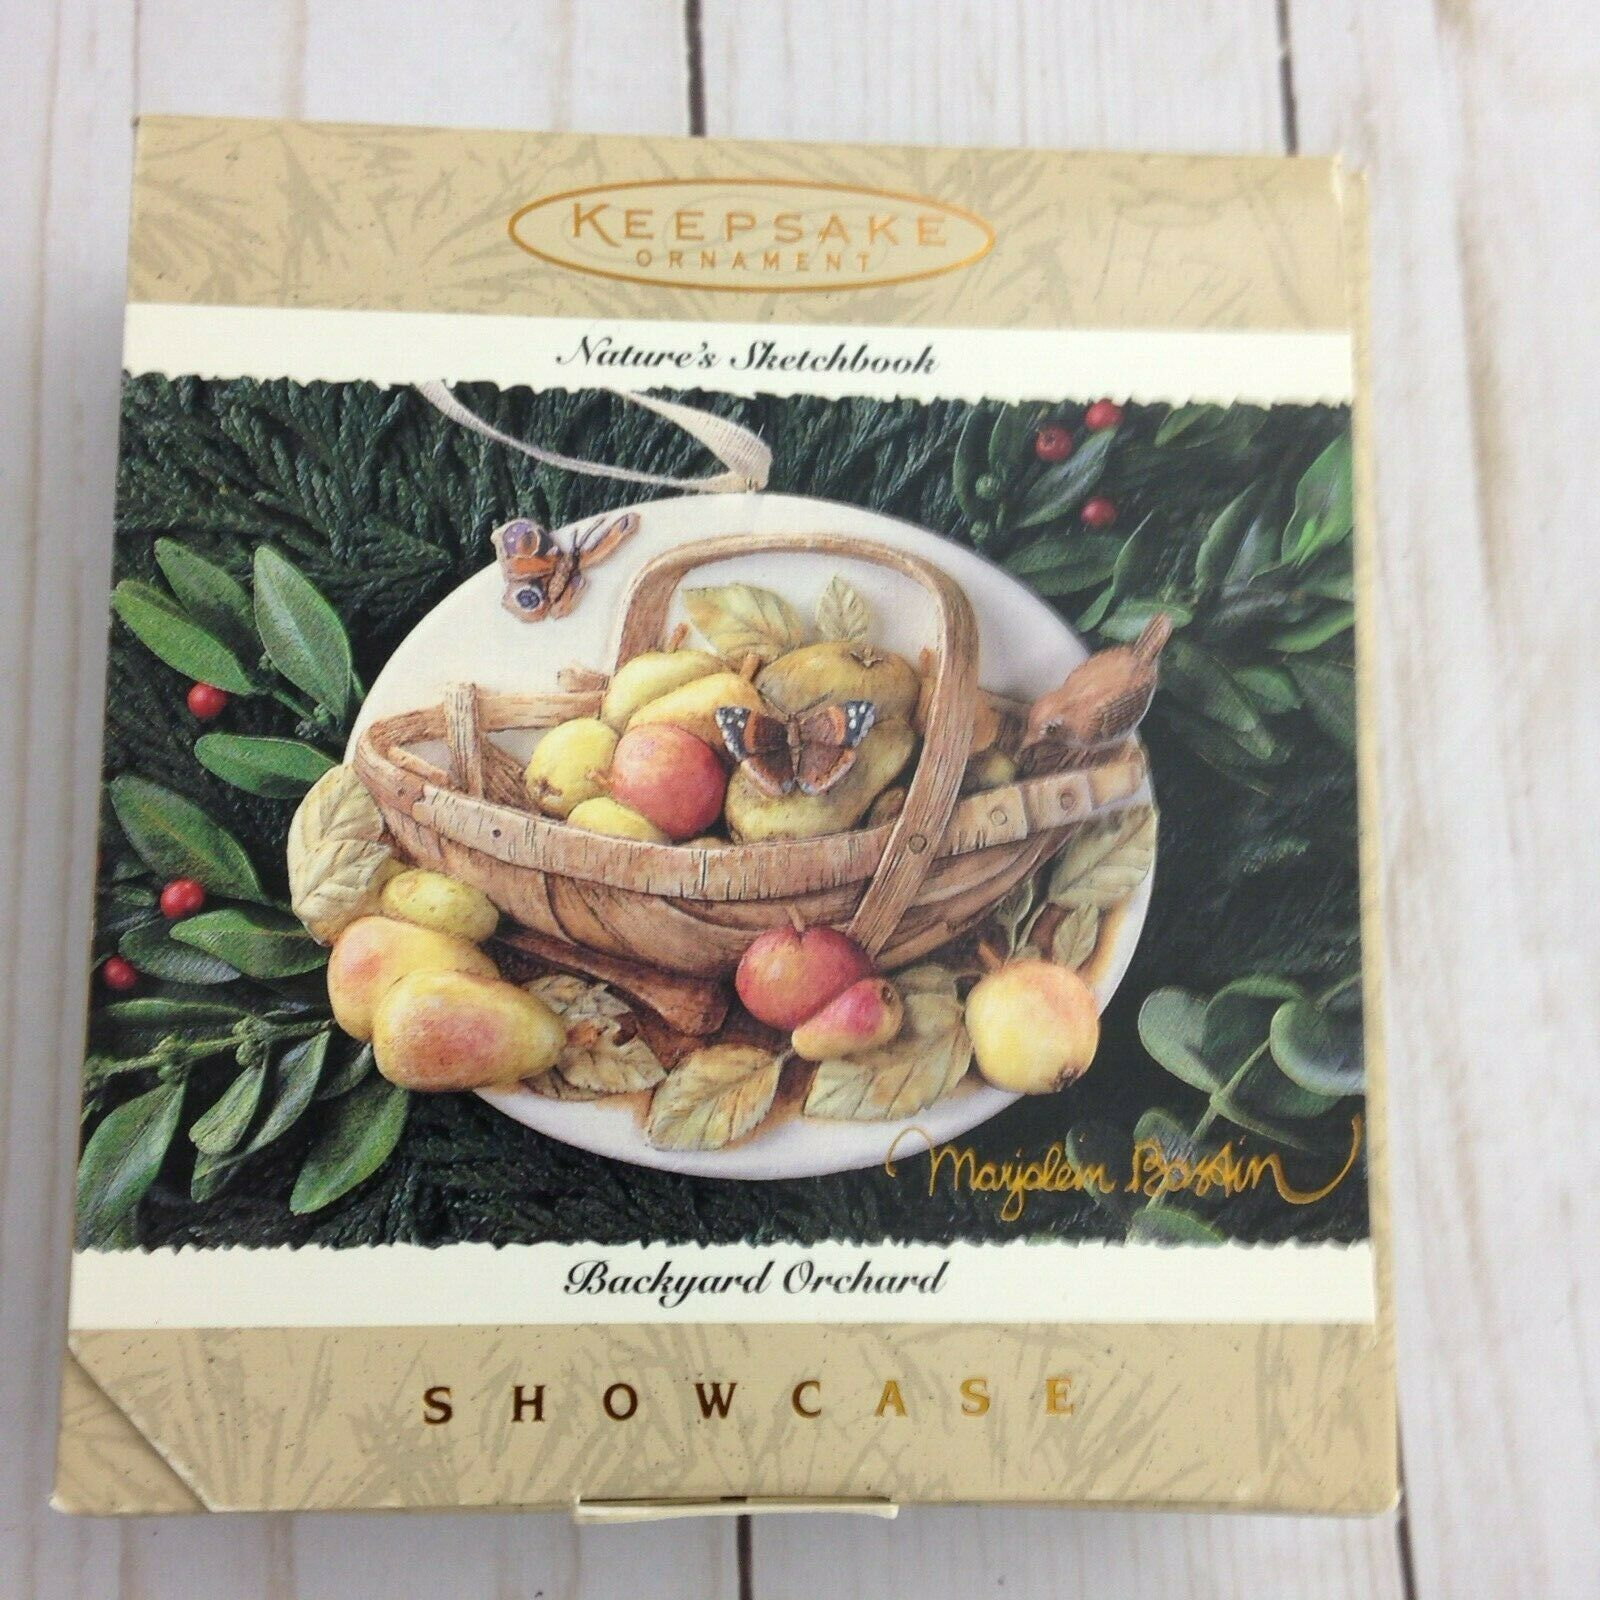 Primary image for Hallmark Keepsake Ornament Natures Sketchbook Background Orchard Showcase qk1069